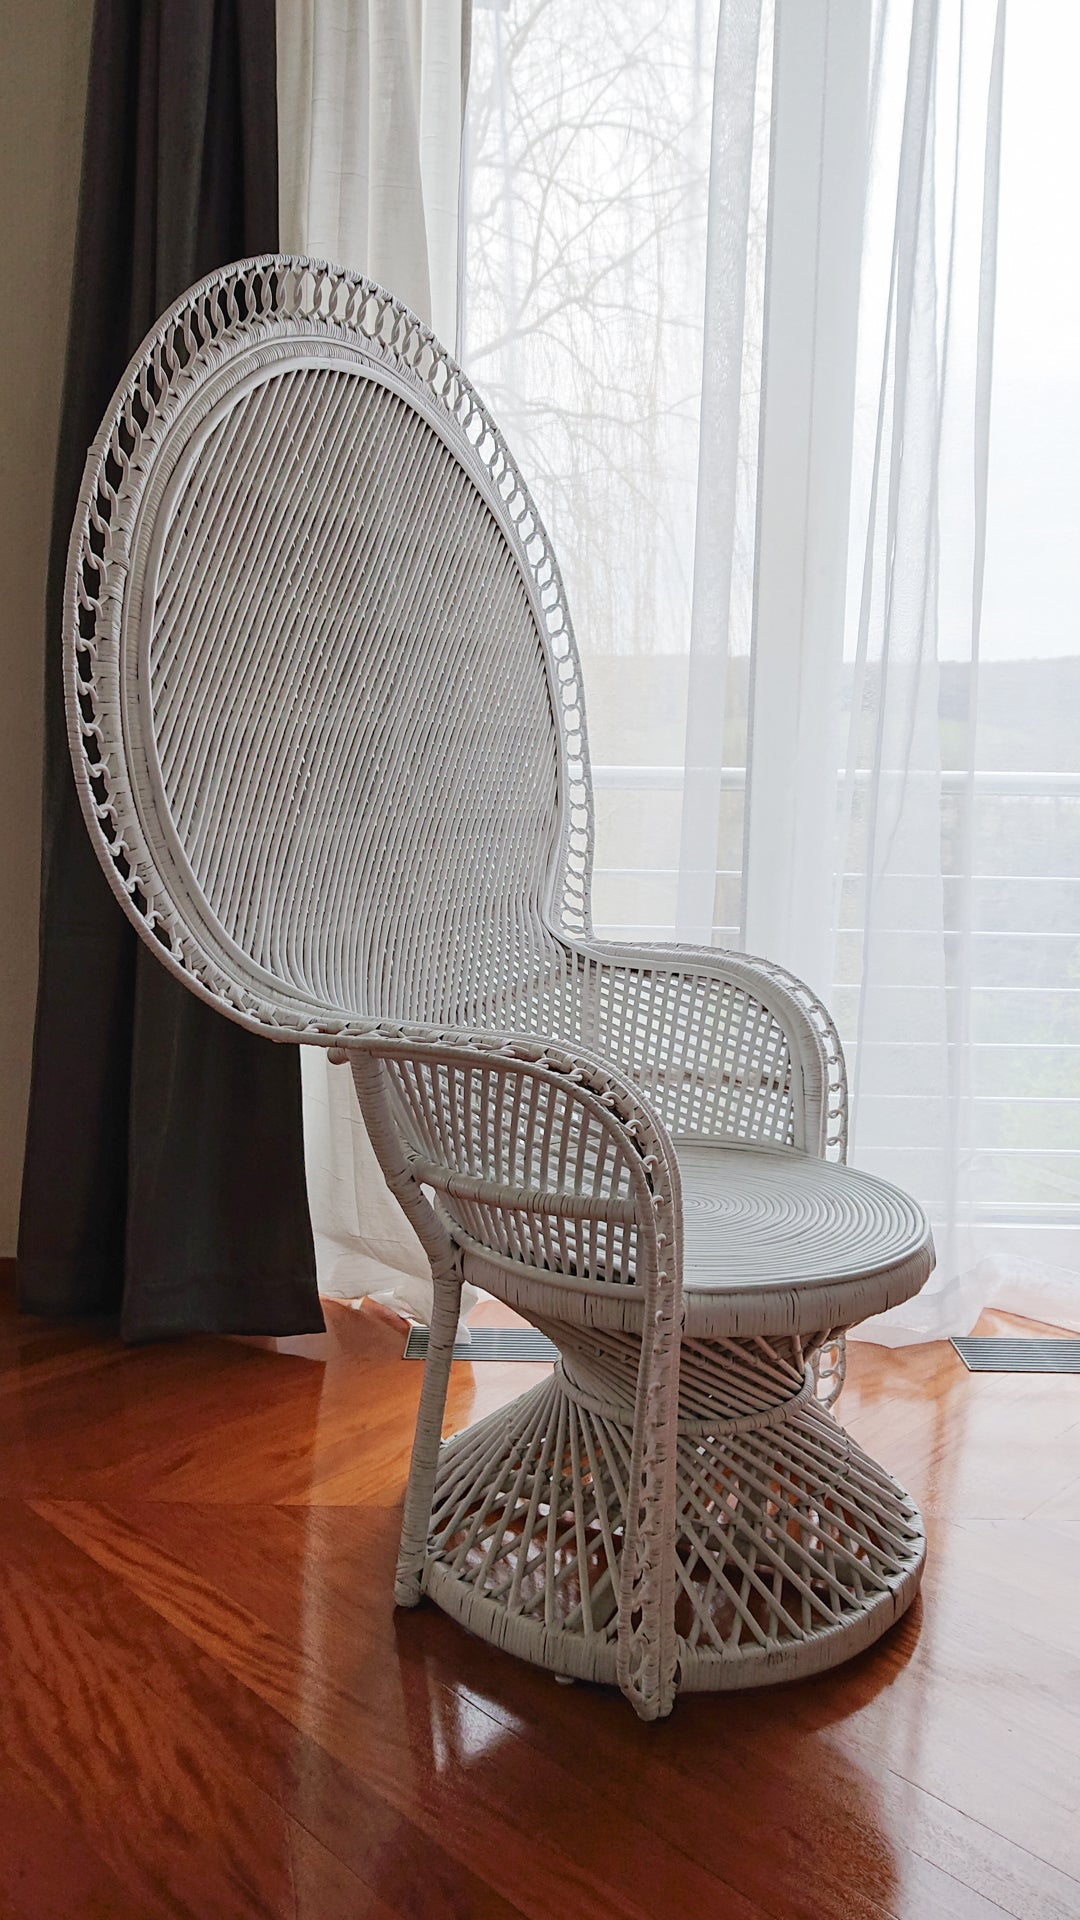 YARA peacock chair